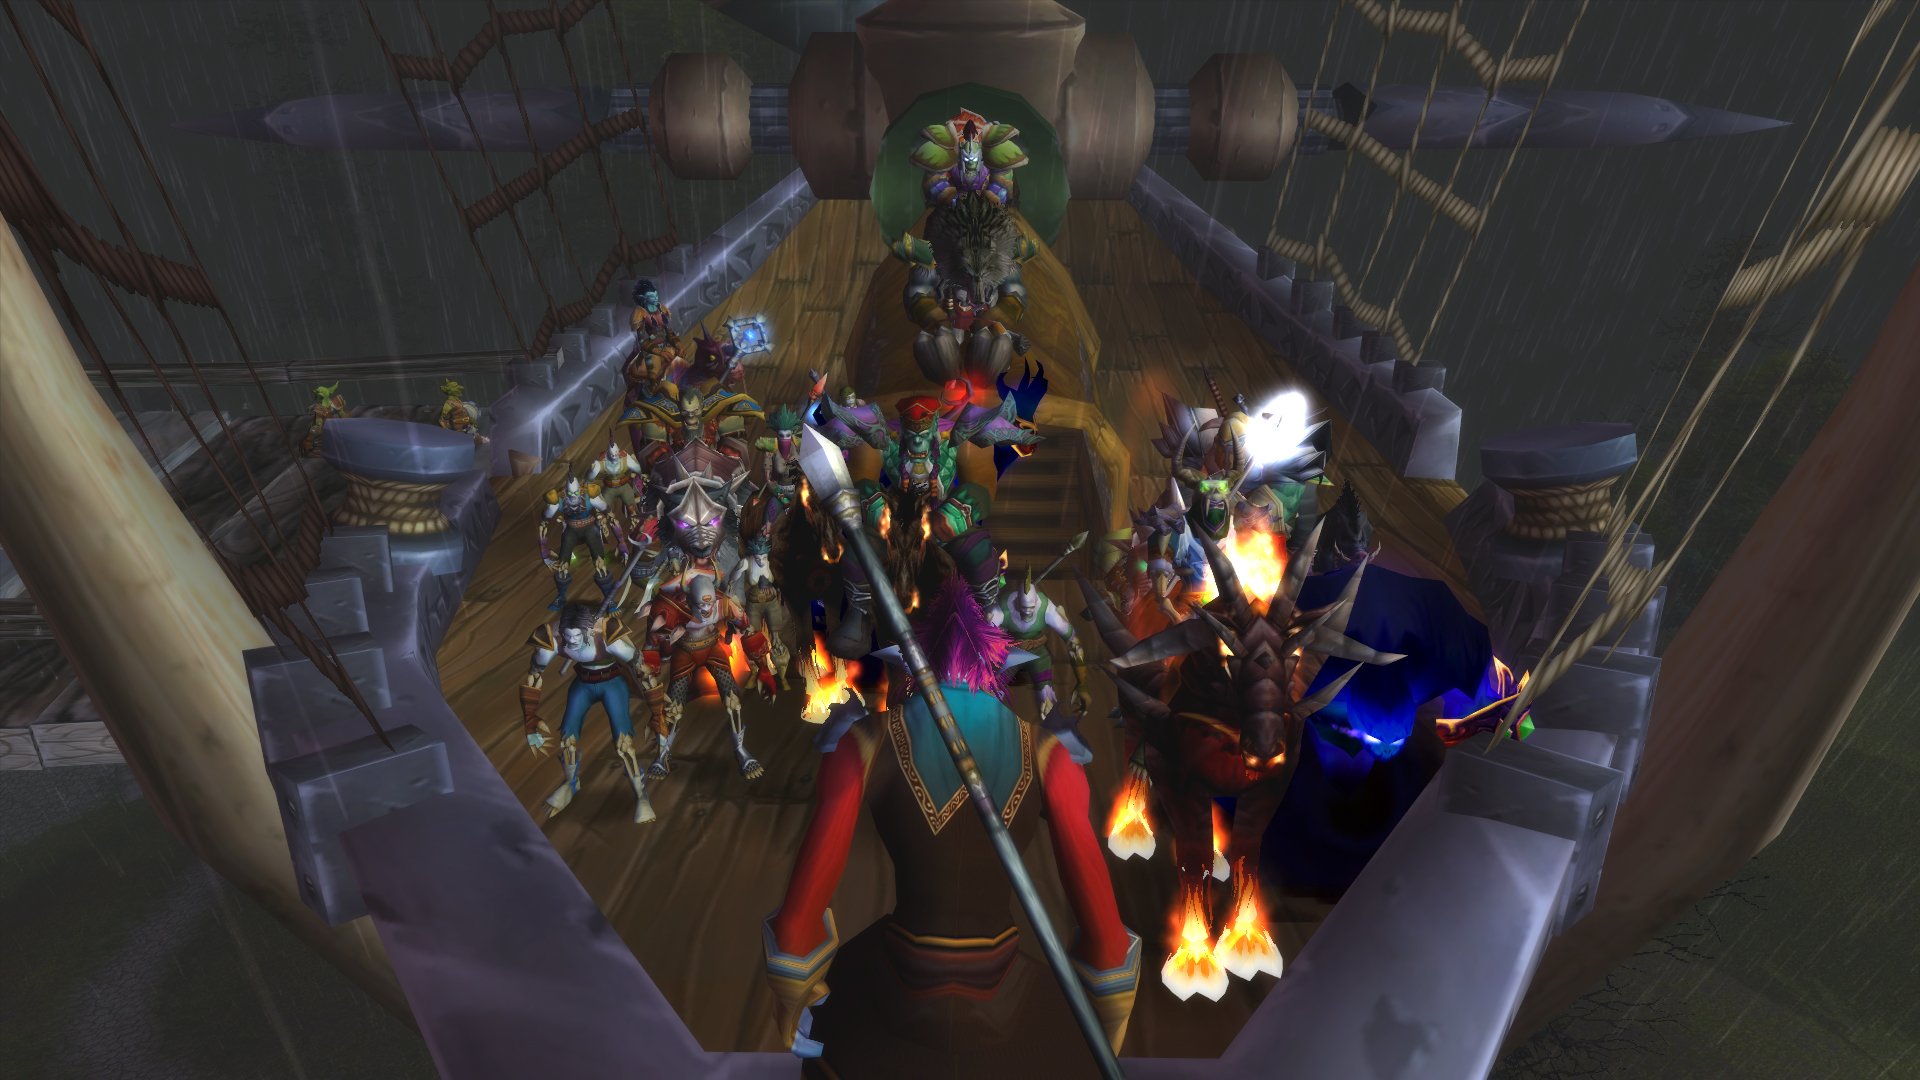 Inside the WoW server Blizzard wants to shut down